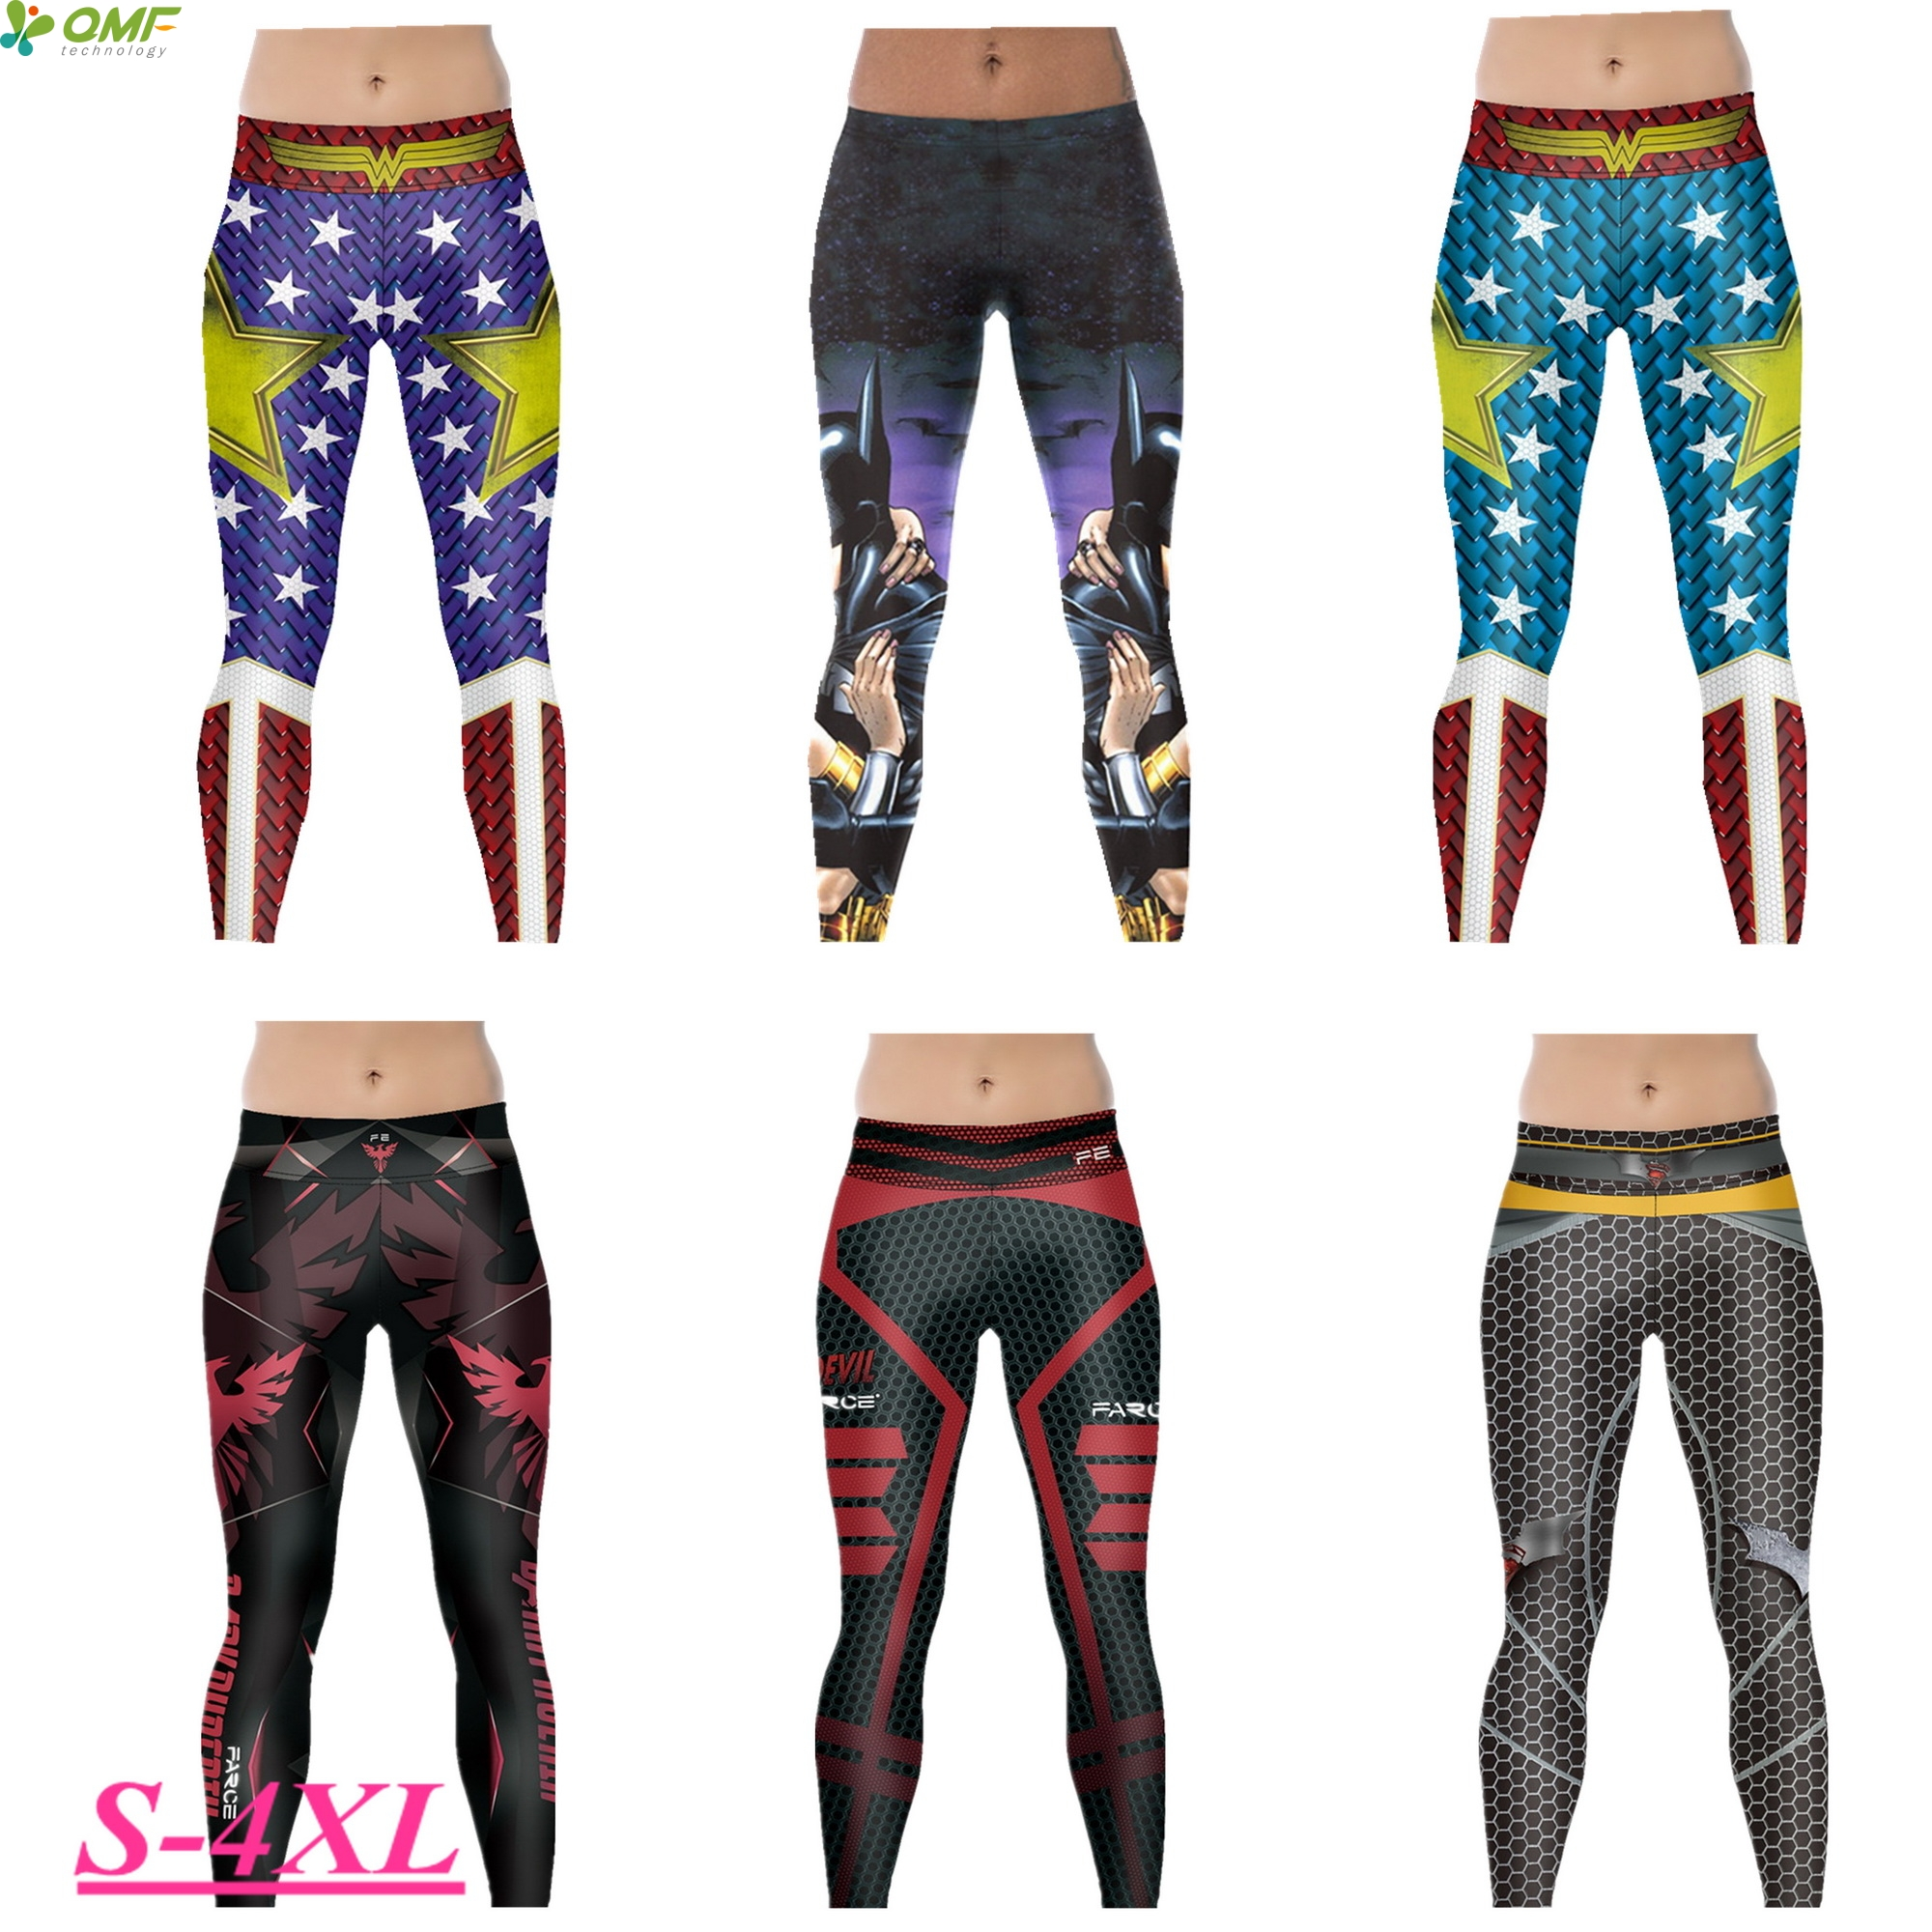 cf79e3a2e8a44 Detail Feedback Questions about Batman V Superman Power Flex Yoga Pants  Batman Wonder Woman Running Tights Justice League Sport Trousers Skinny  Leggings ...